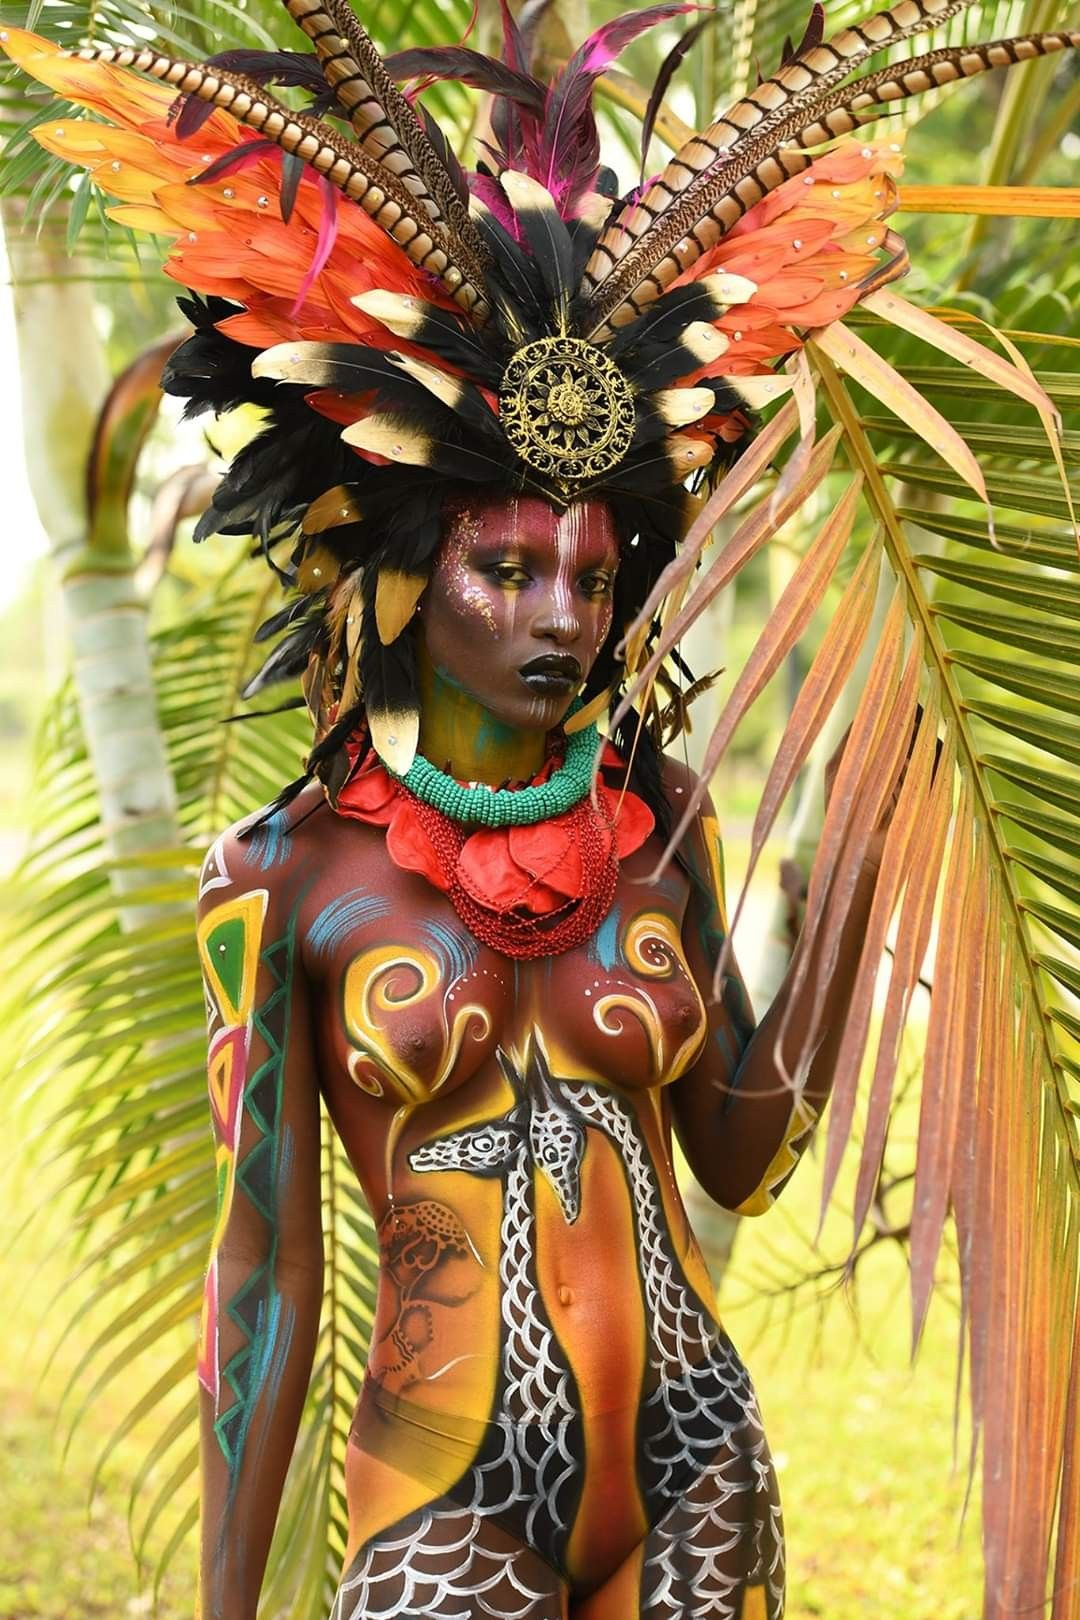 Pin By Nasrfadi On Indian Paint In 2020 Body Painting Body Painting Festival Body Art Painting